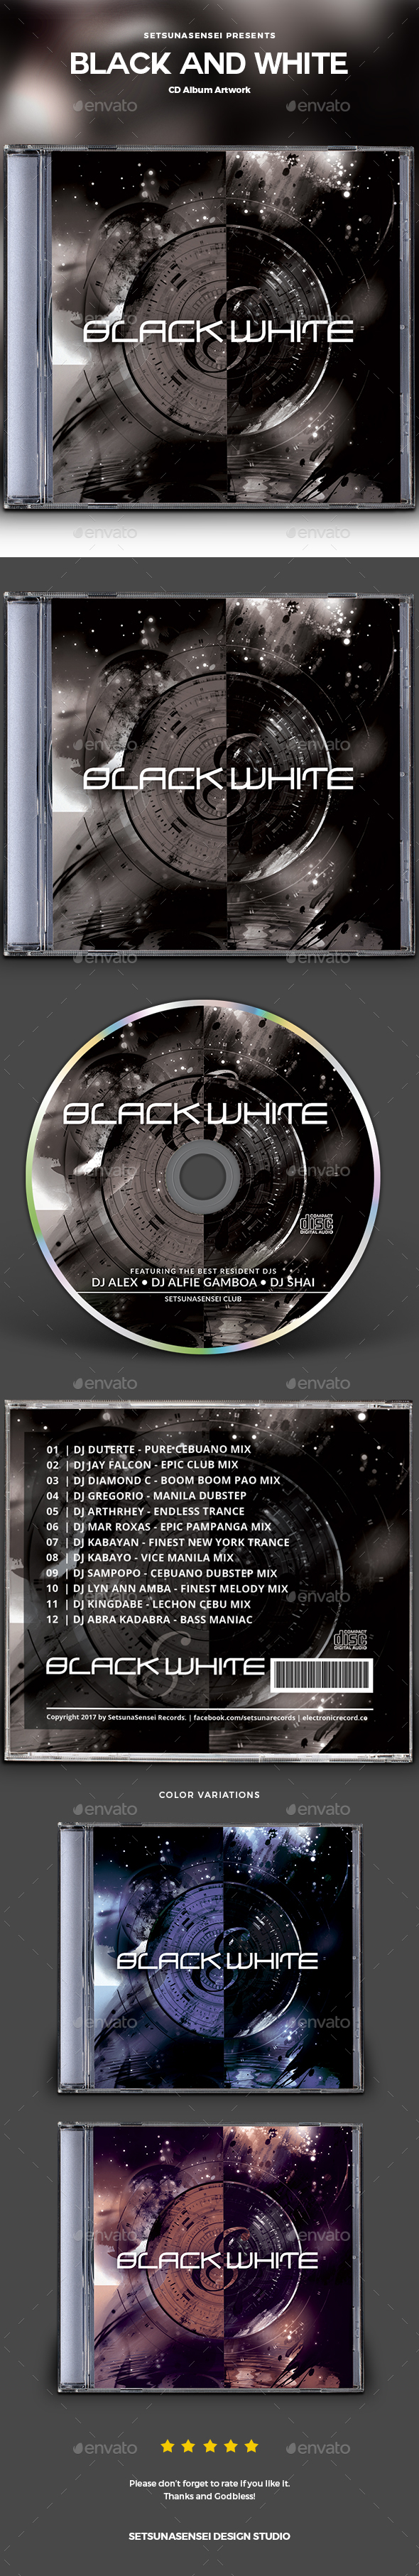 Black and White CD Album Artwork - CD & DVD Artwork Print Templates